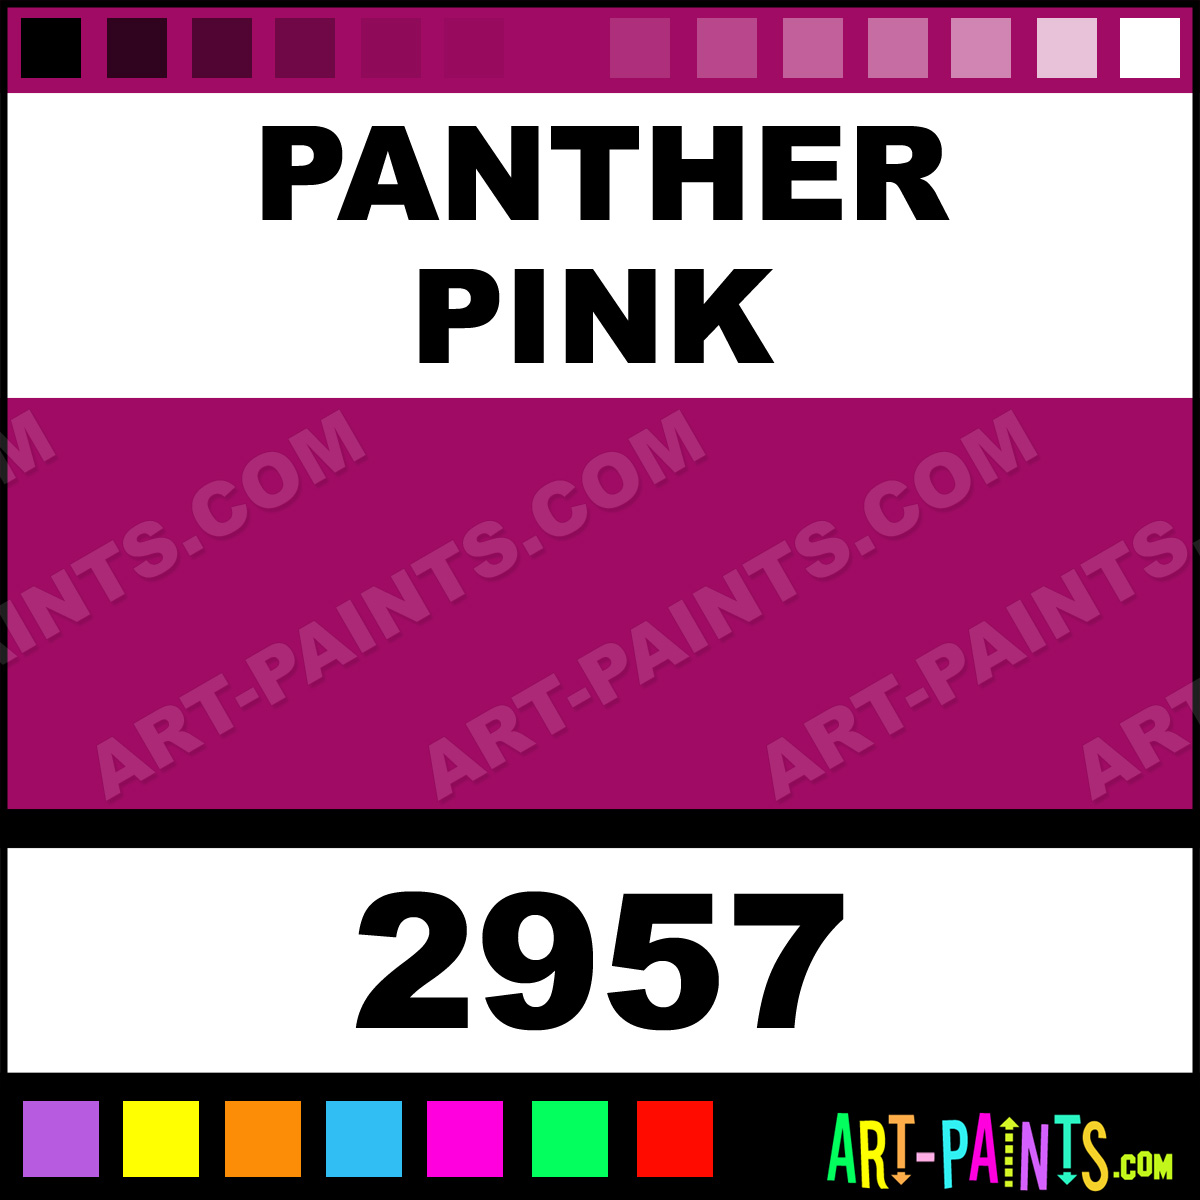 Where Can I See The Pink Panther Car In